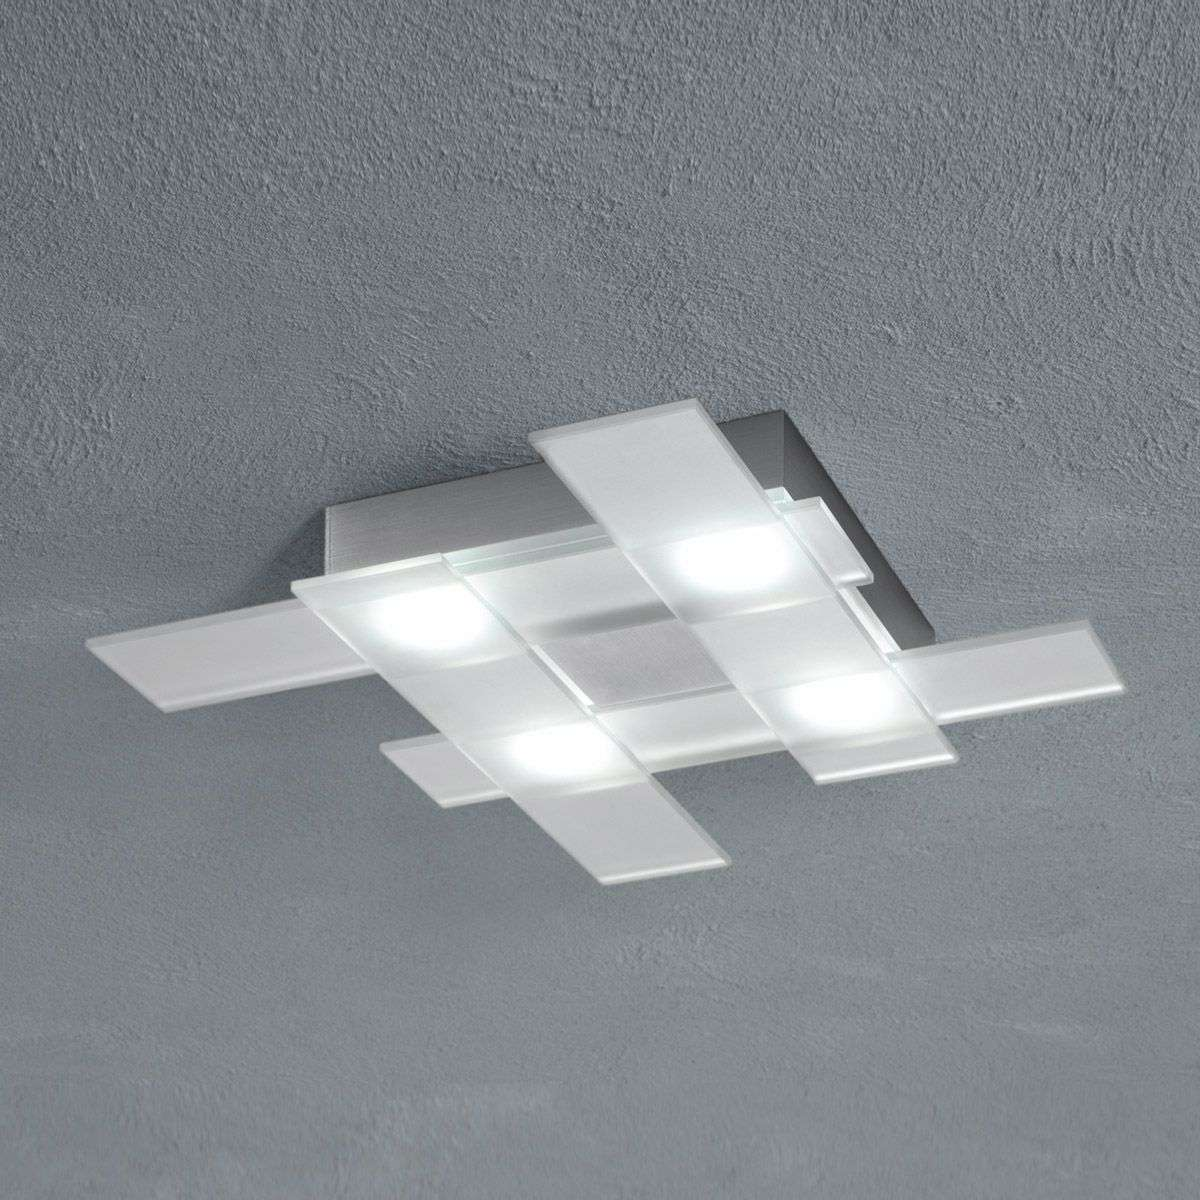 Dimmable led ceiling light manhattan lights dimmable led ceiling light manhattan 3051139 31 aloadofball Image collections